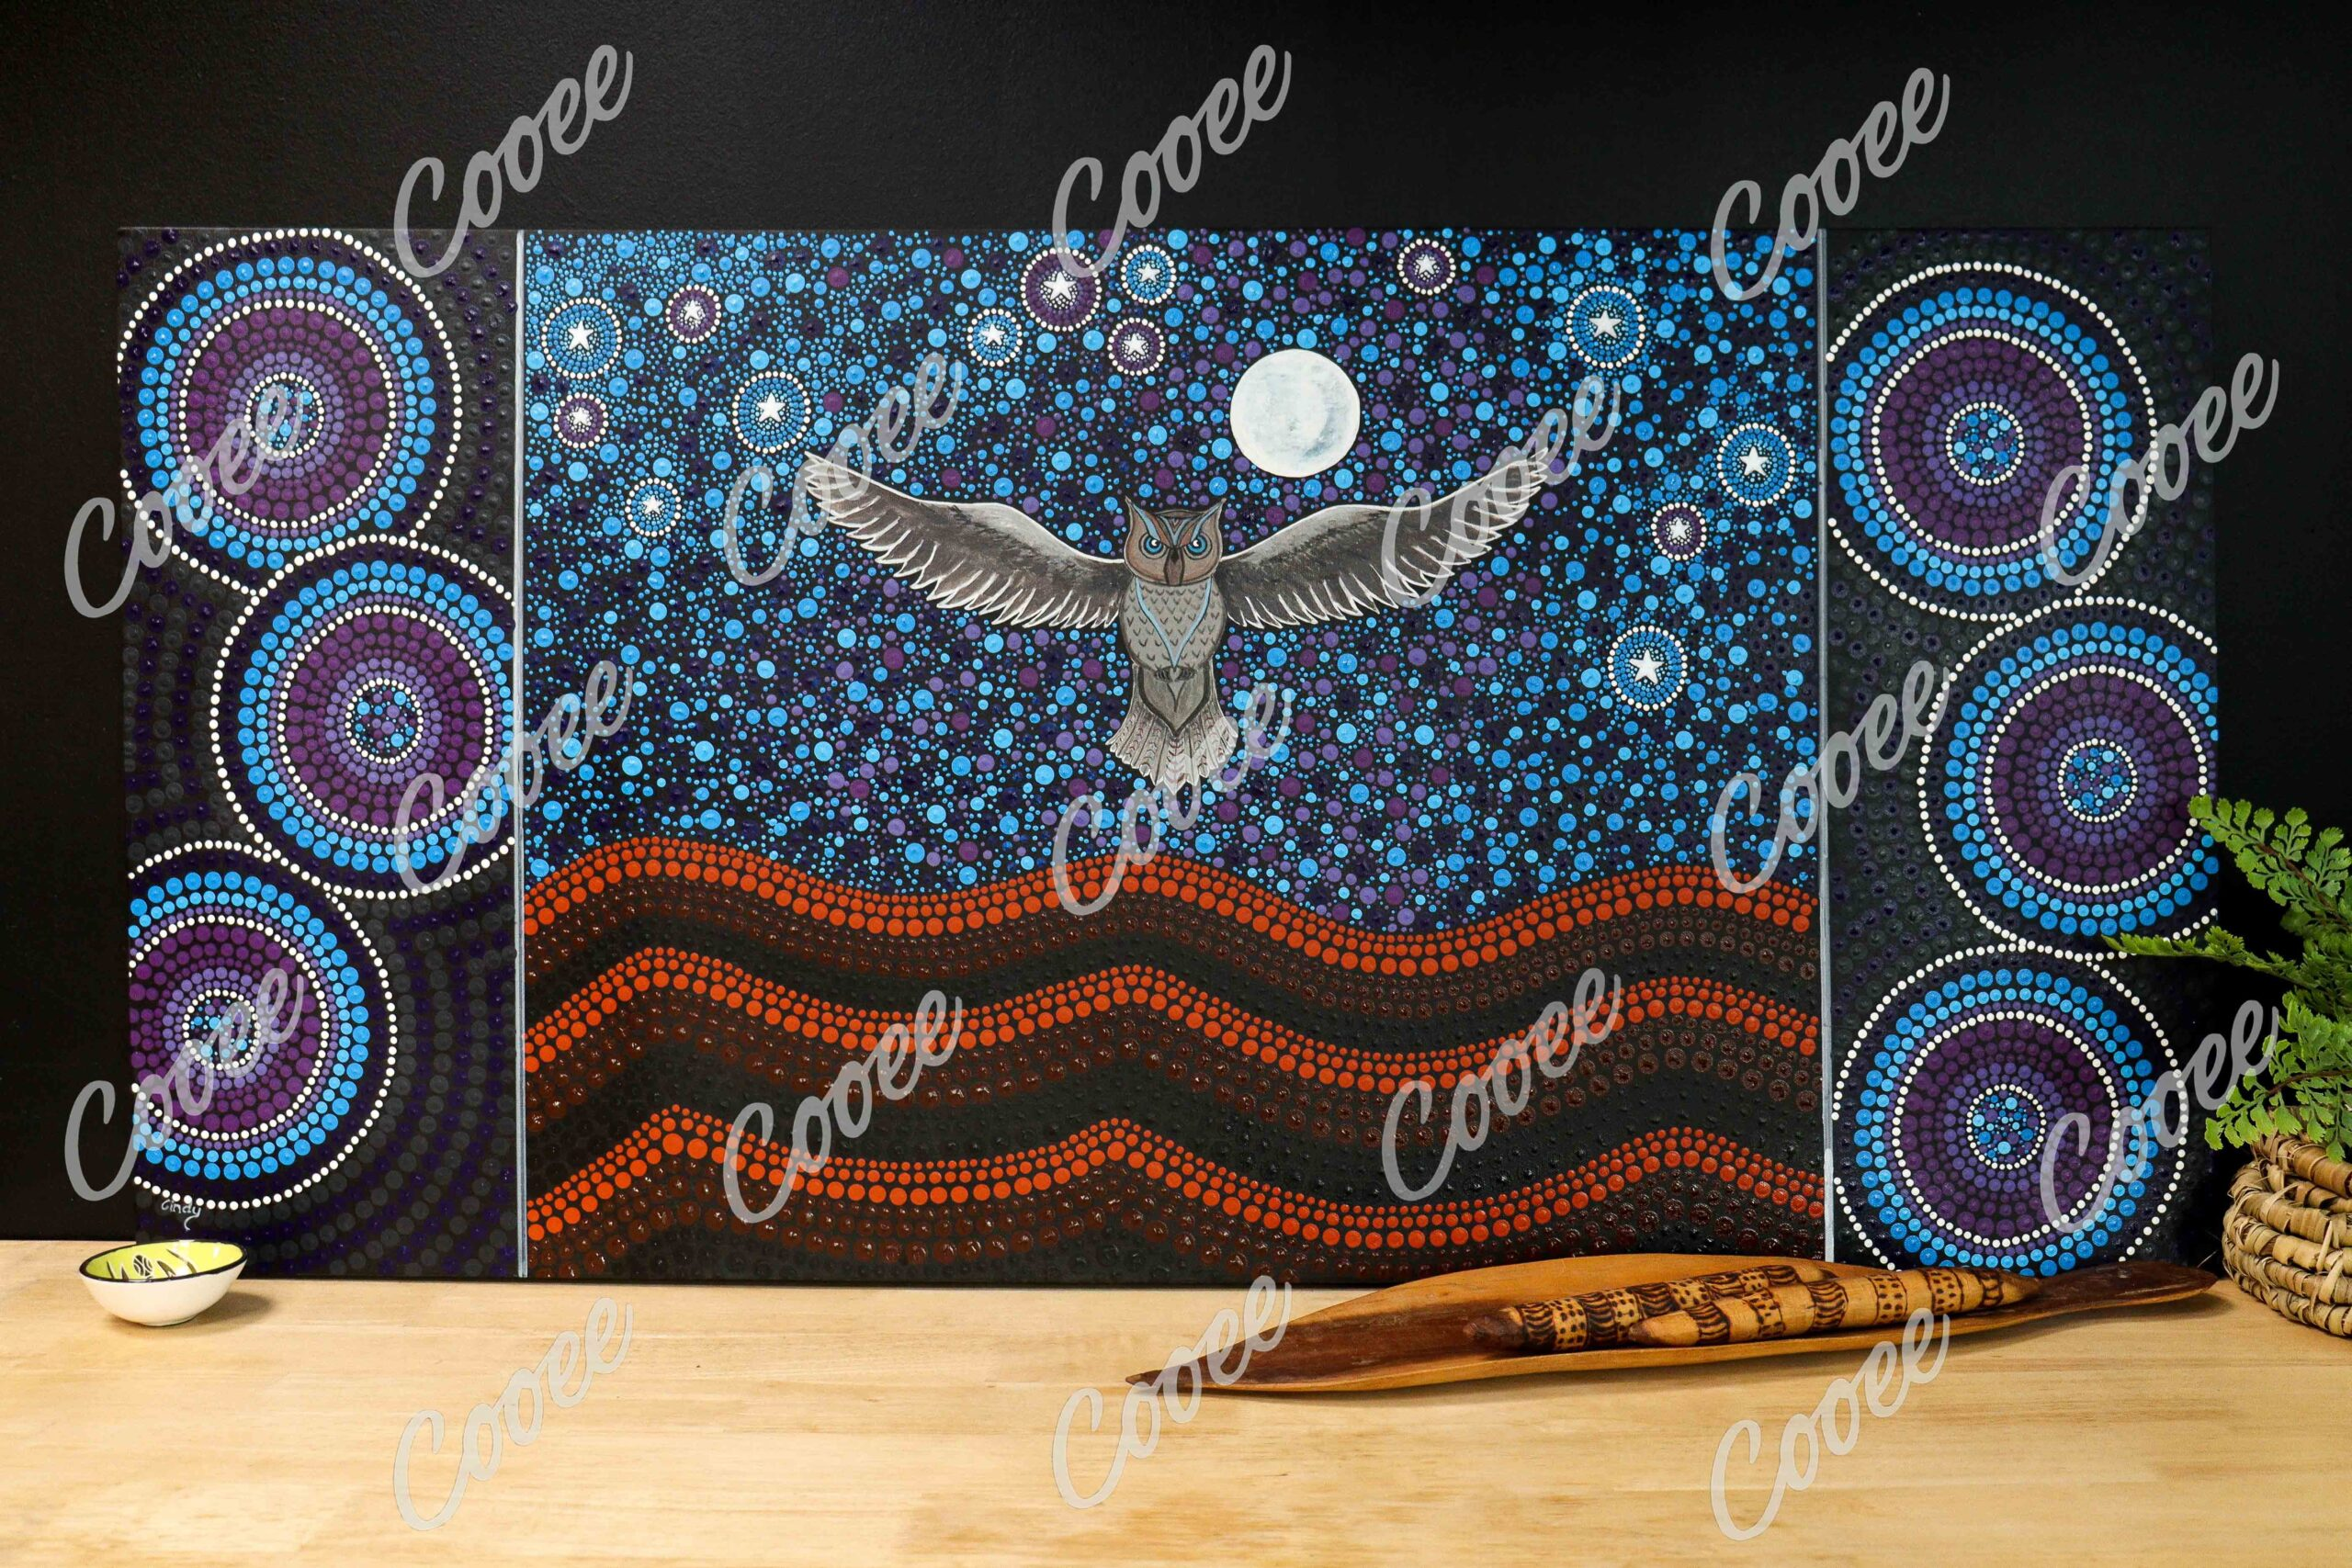 Cooee-Cafe-Original-Indigenous-Painting10